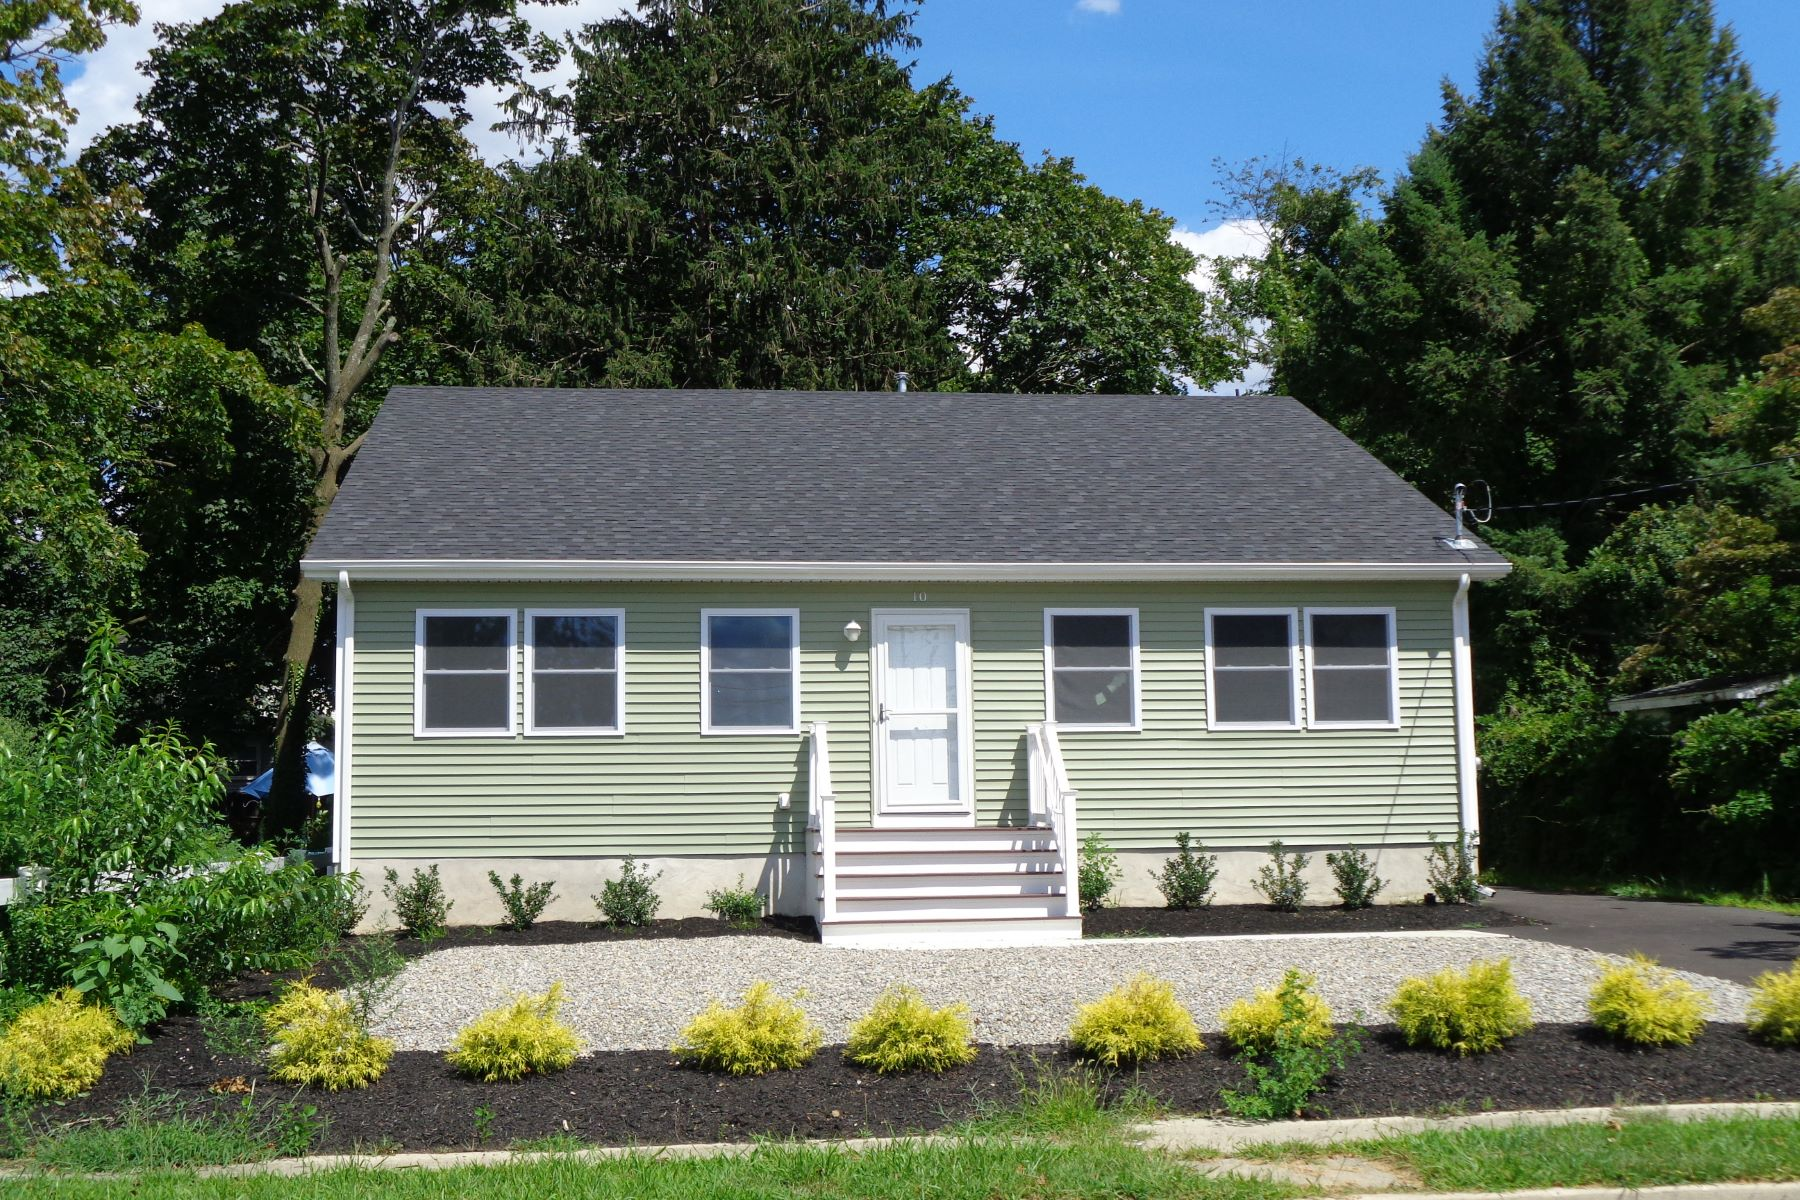 Single Family Homes for Sale at Recently Remodeled With Lots Of Natural Light 10 S Gateway Toms River, New Jersey 08757 United States